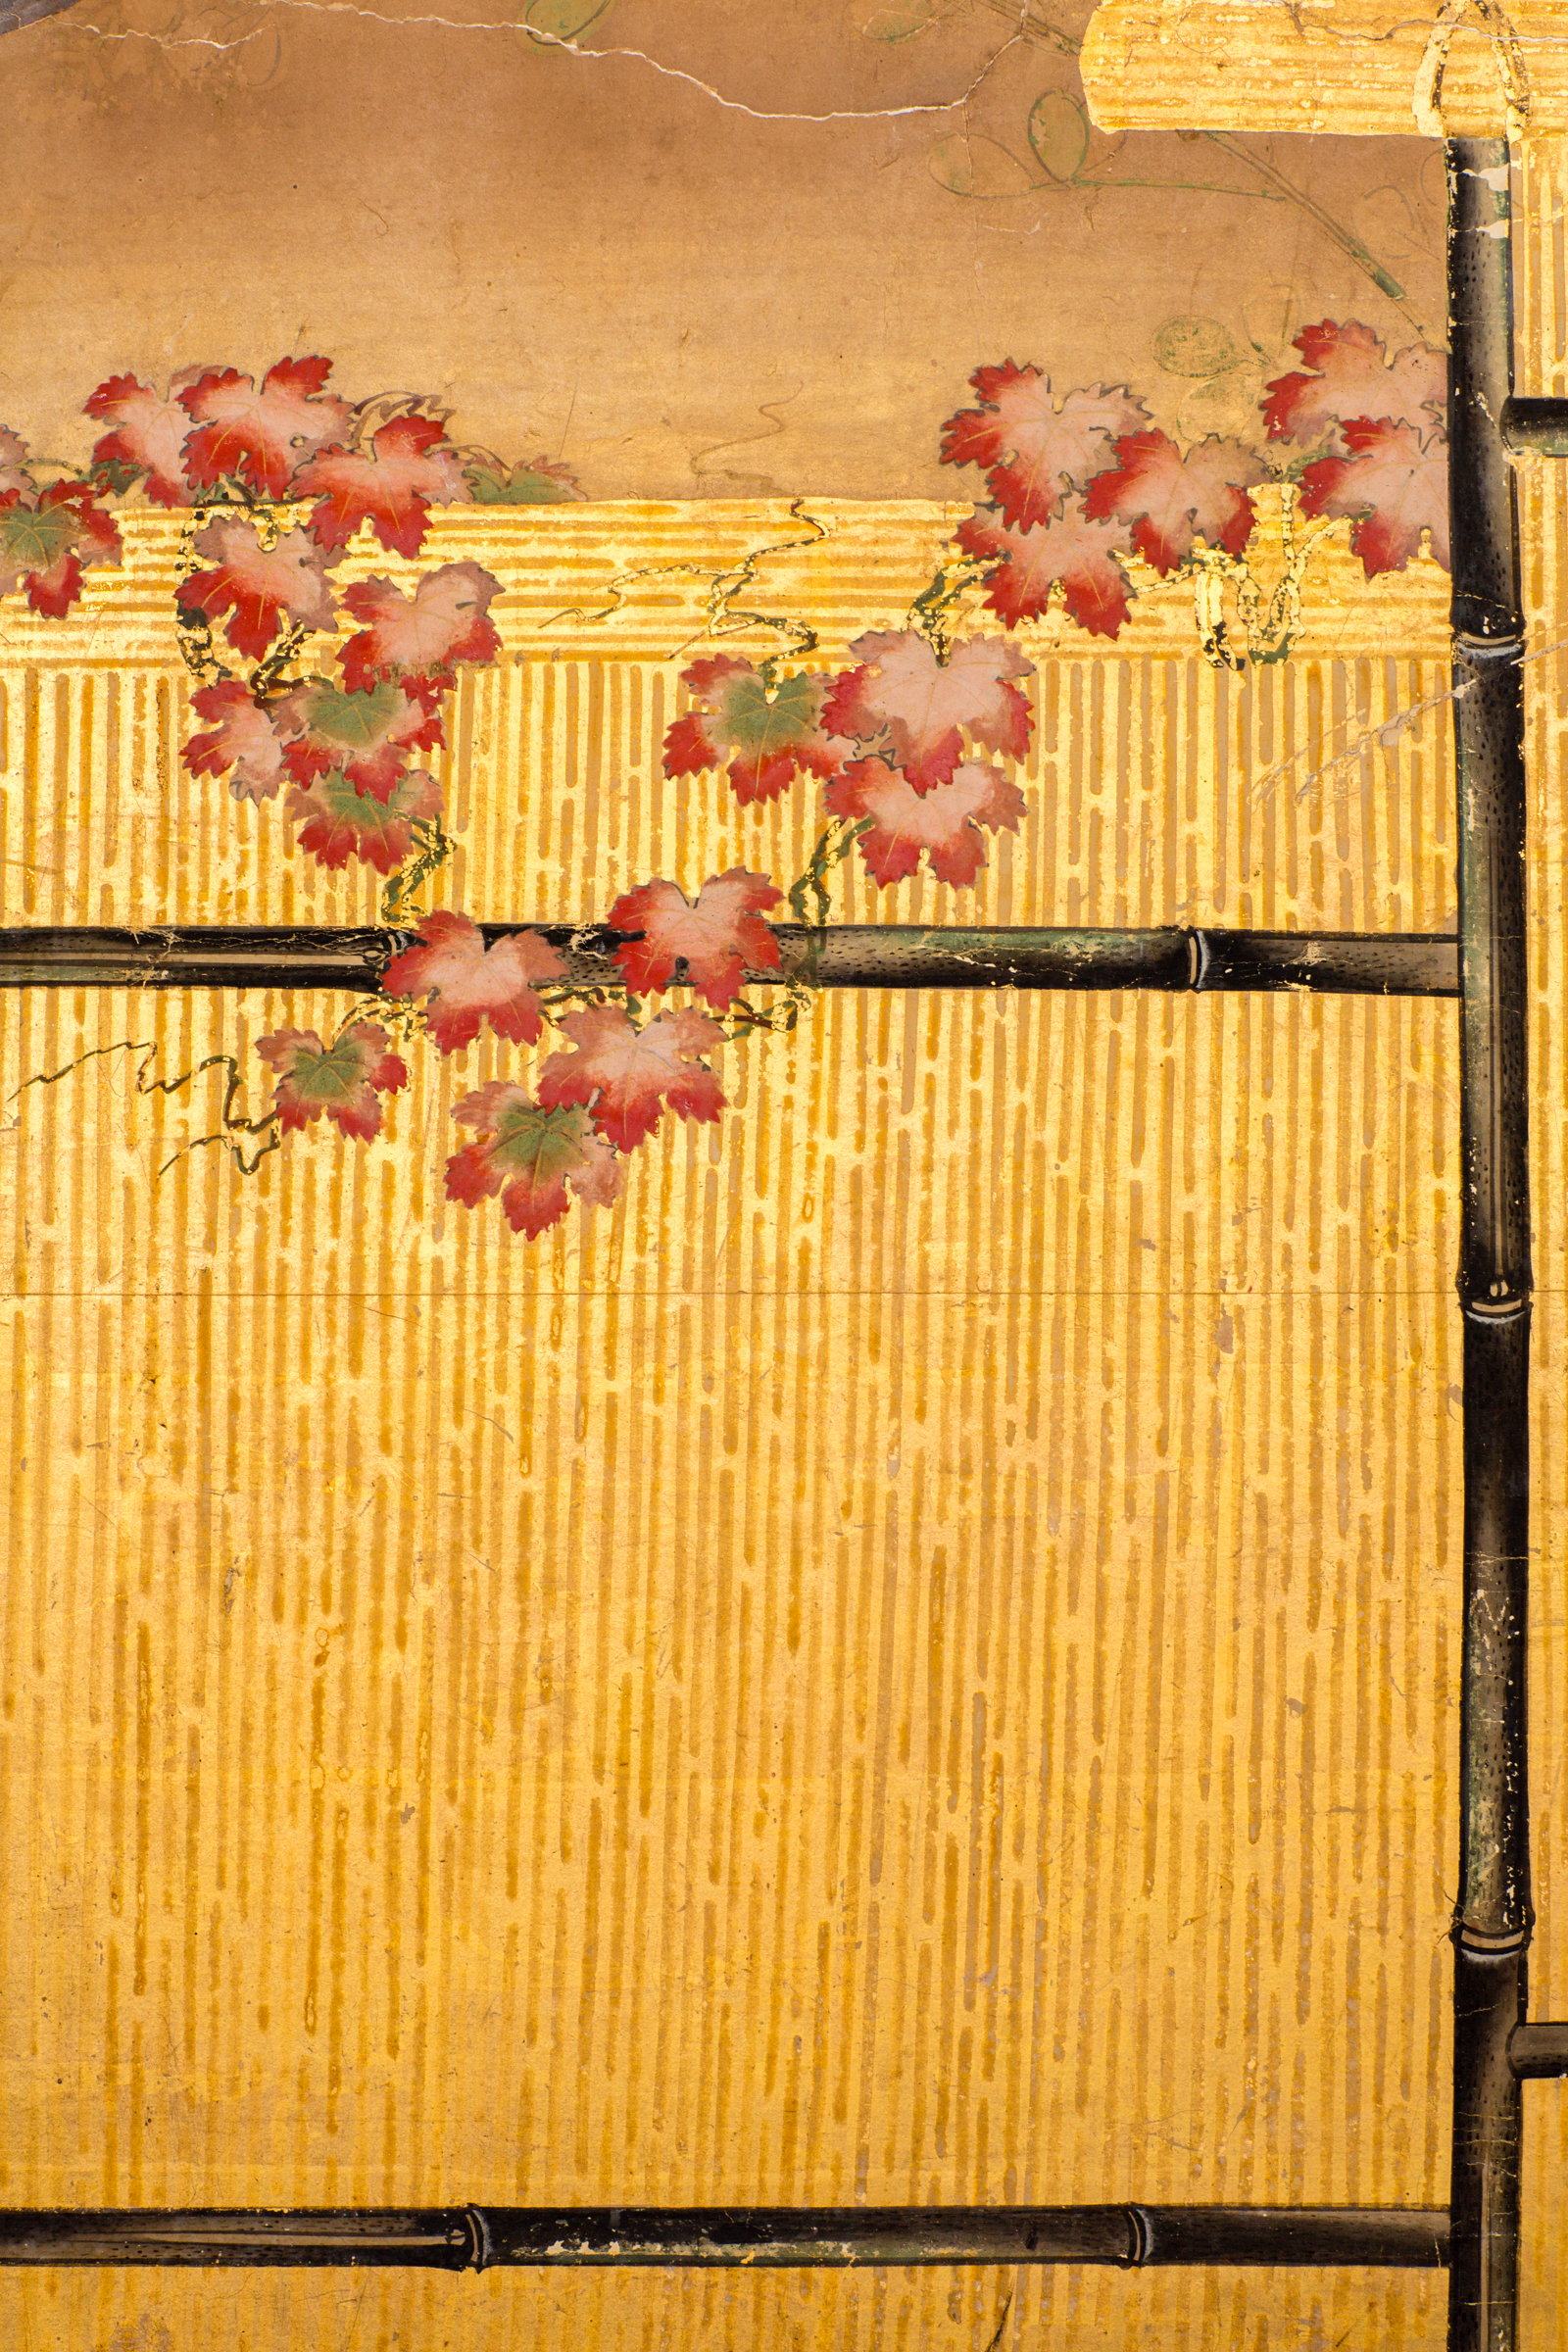 Japanese Two Panel Screen: Birds on a Fence